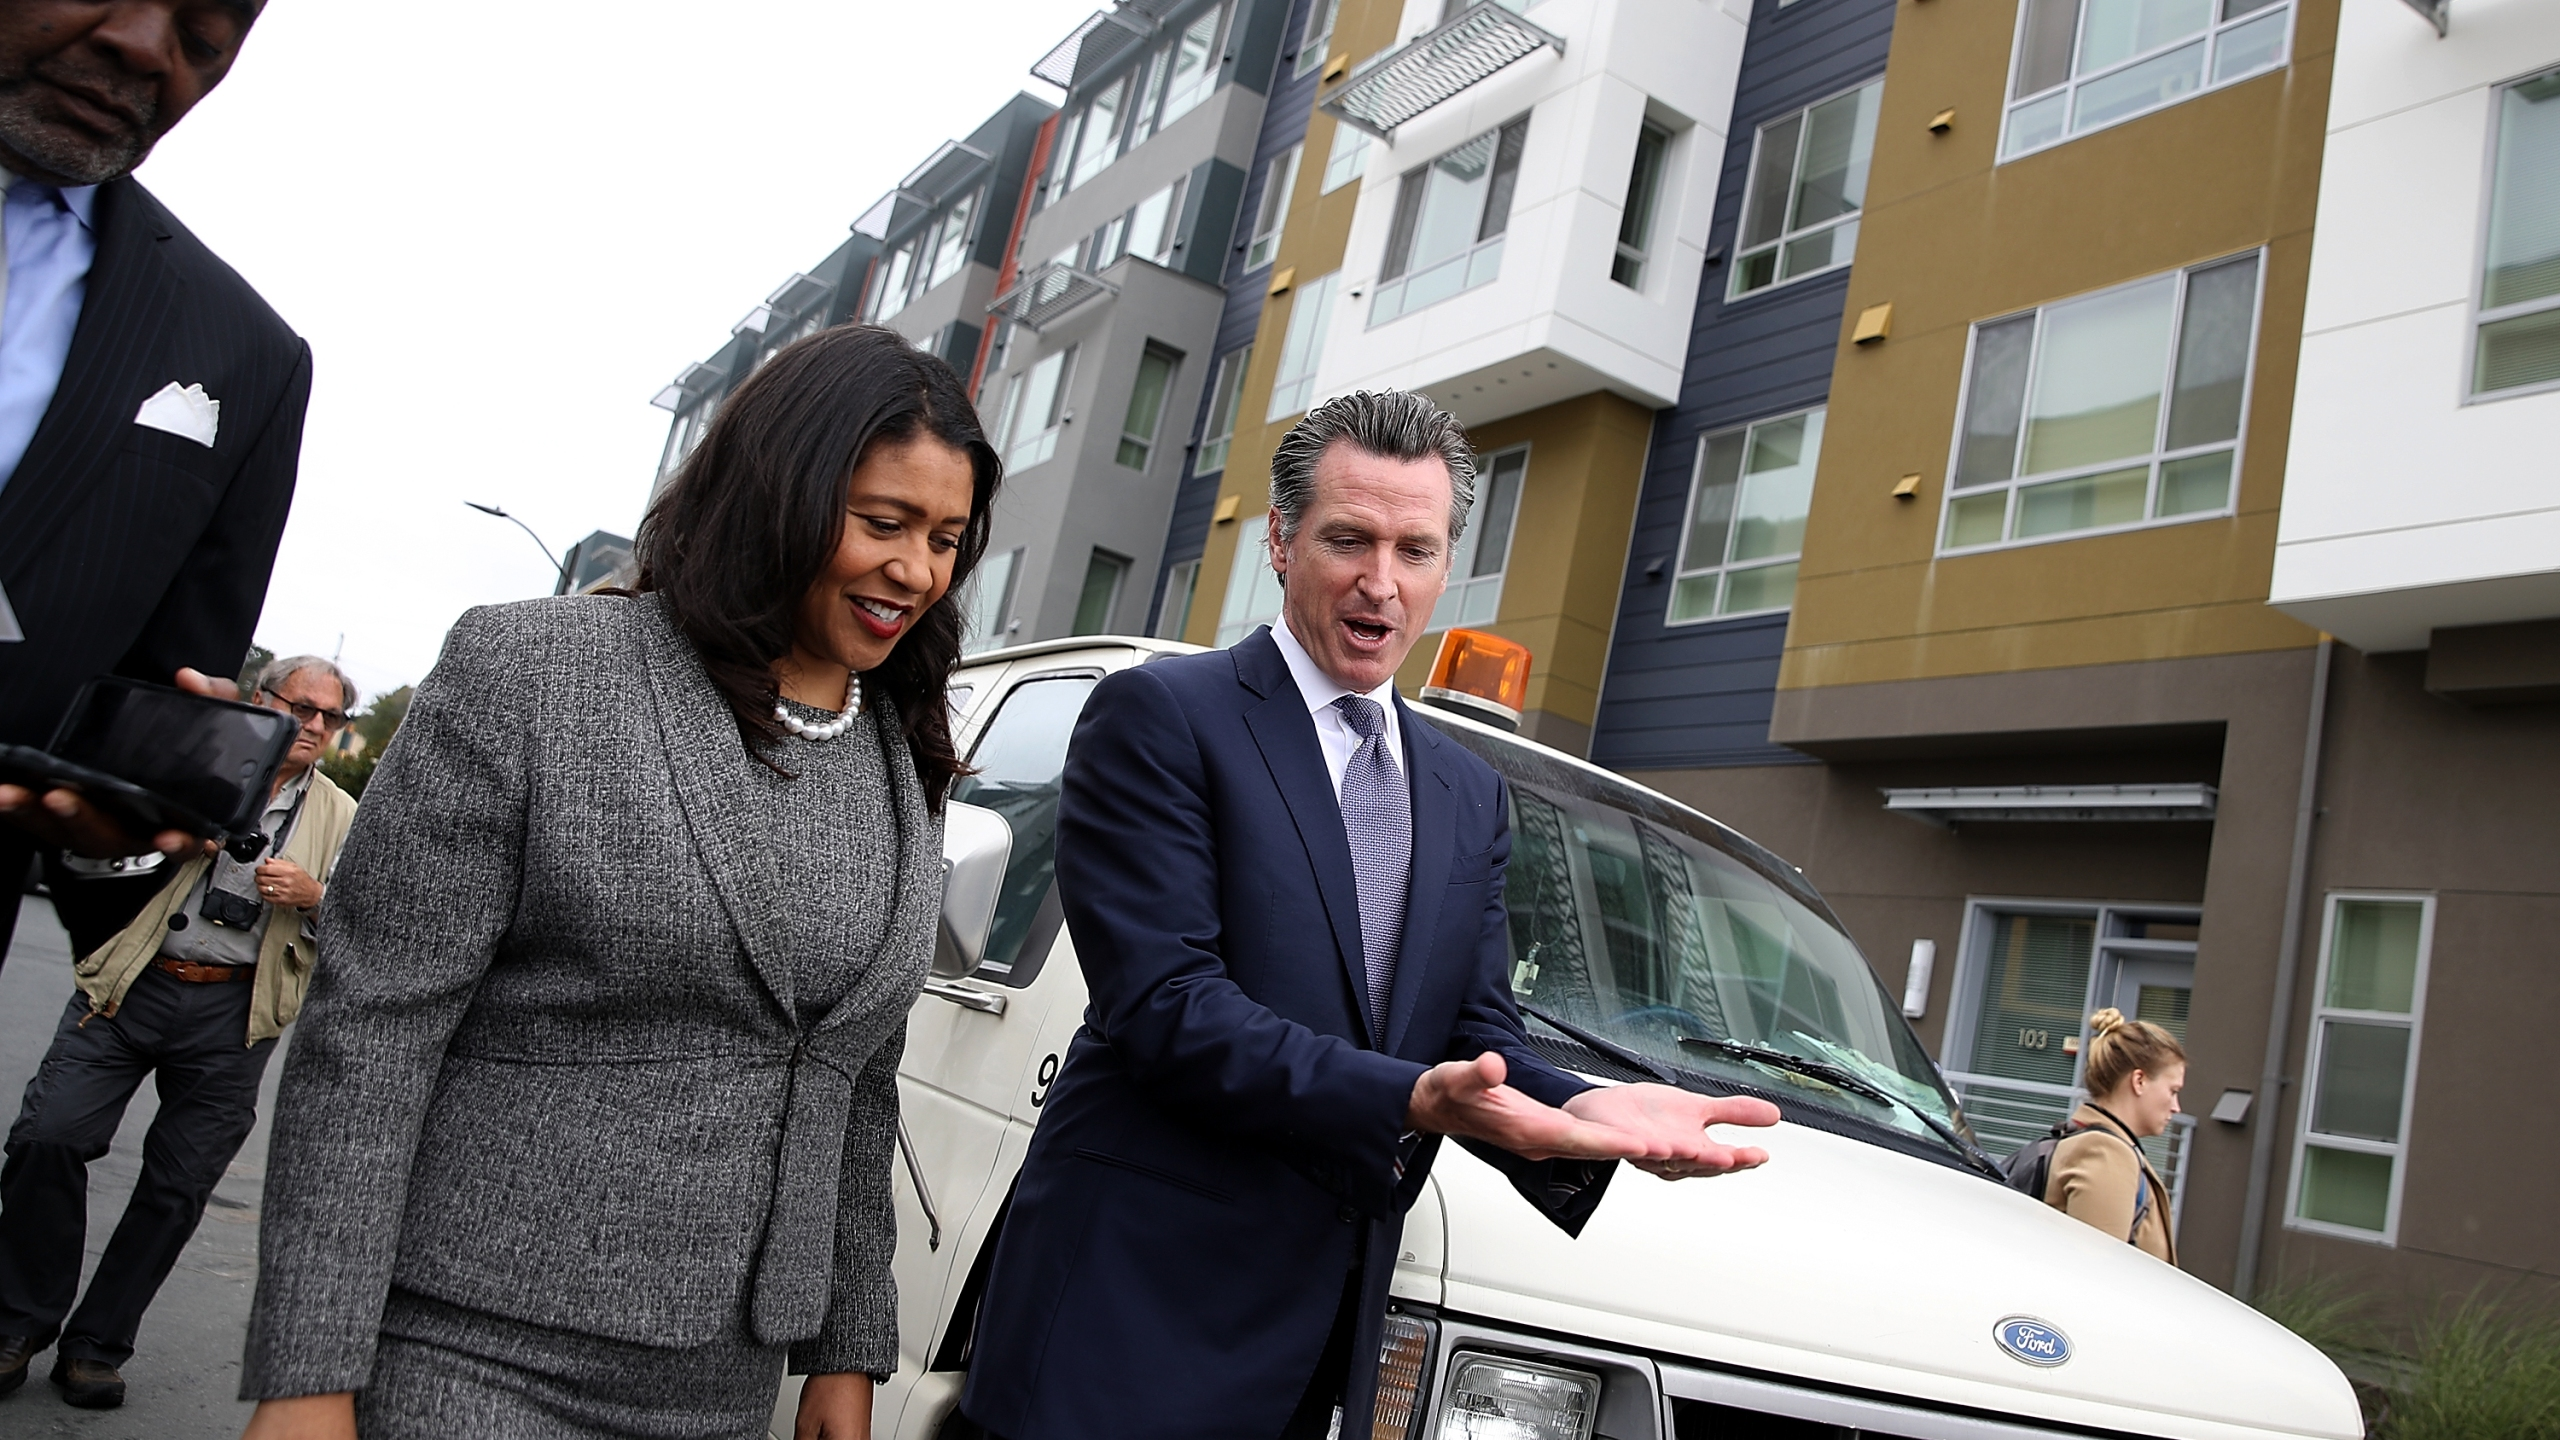 Gavin Newsom talks with San Francisco mayor London Breed as they visit the Alice Griffith Apartments on Aug. 22, 2018 in San Francisco. (Credit: Justin Sullivan/Getty Images)